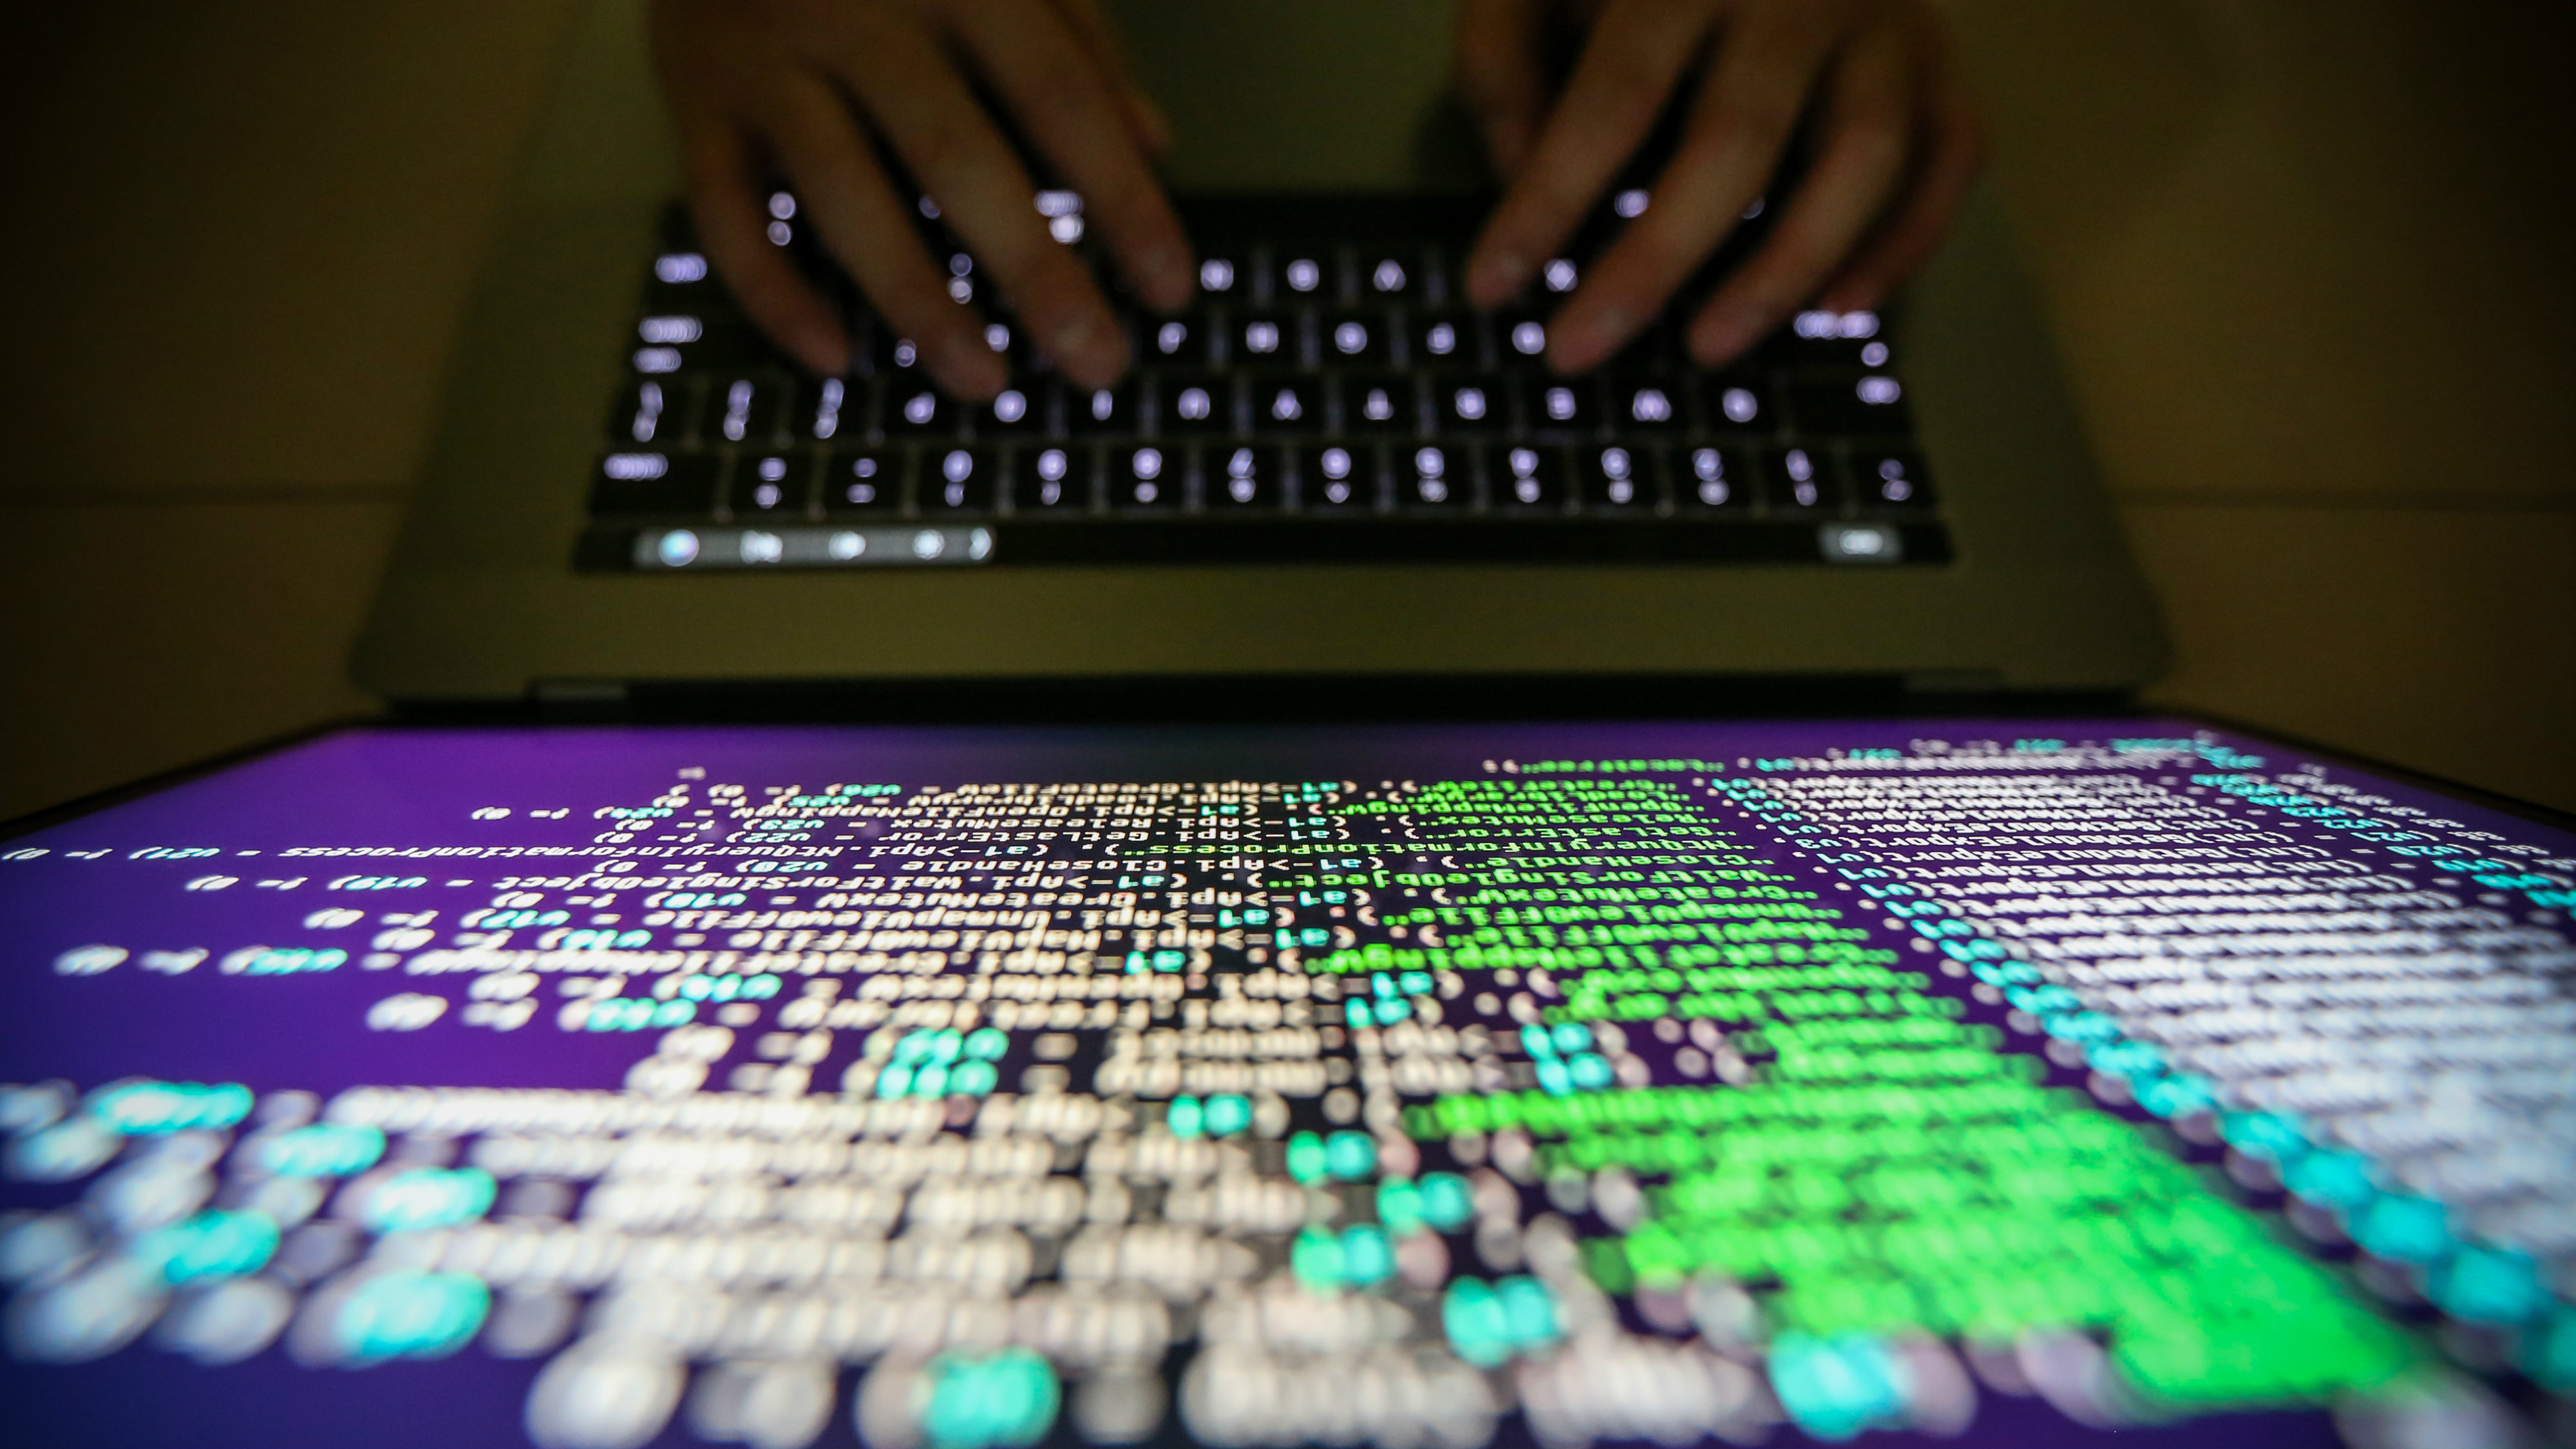 A programer shows a sample of decrypting source code in Taipei, Taiwan, 13 May 2017 (reissued 27 June 2017). According to news reports, companies around the world on 27 June 2017 are reporting they are being hit by a major cyber-attack.